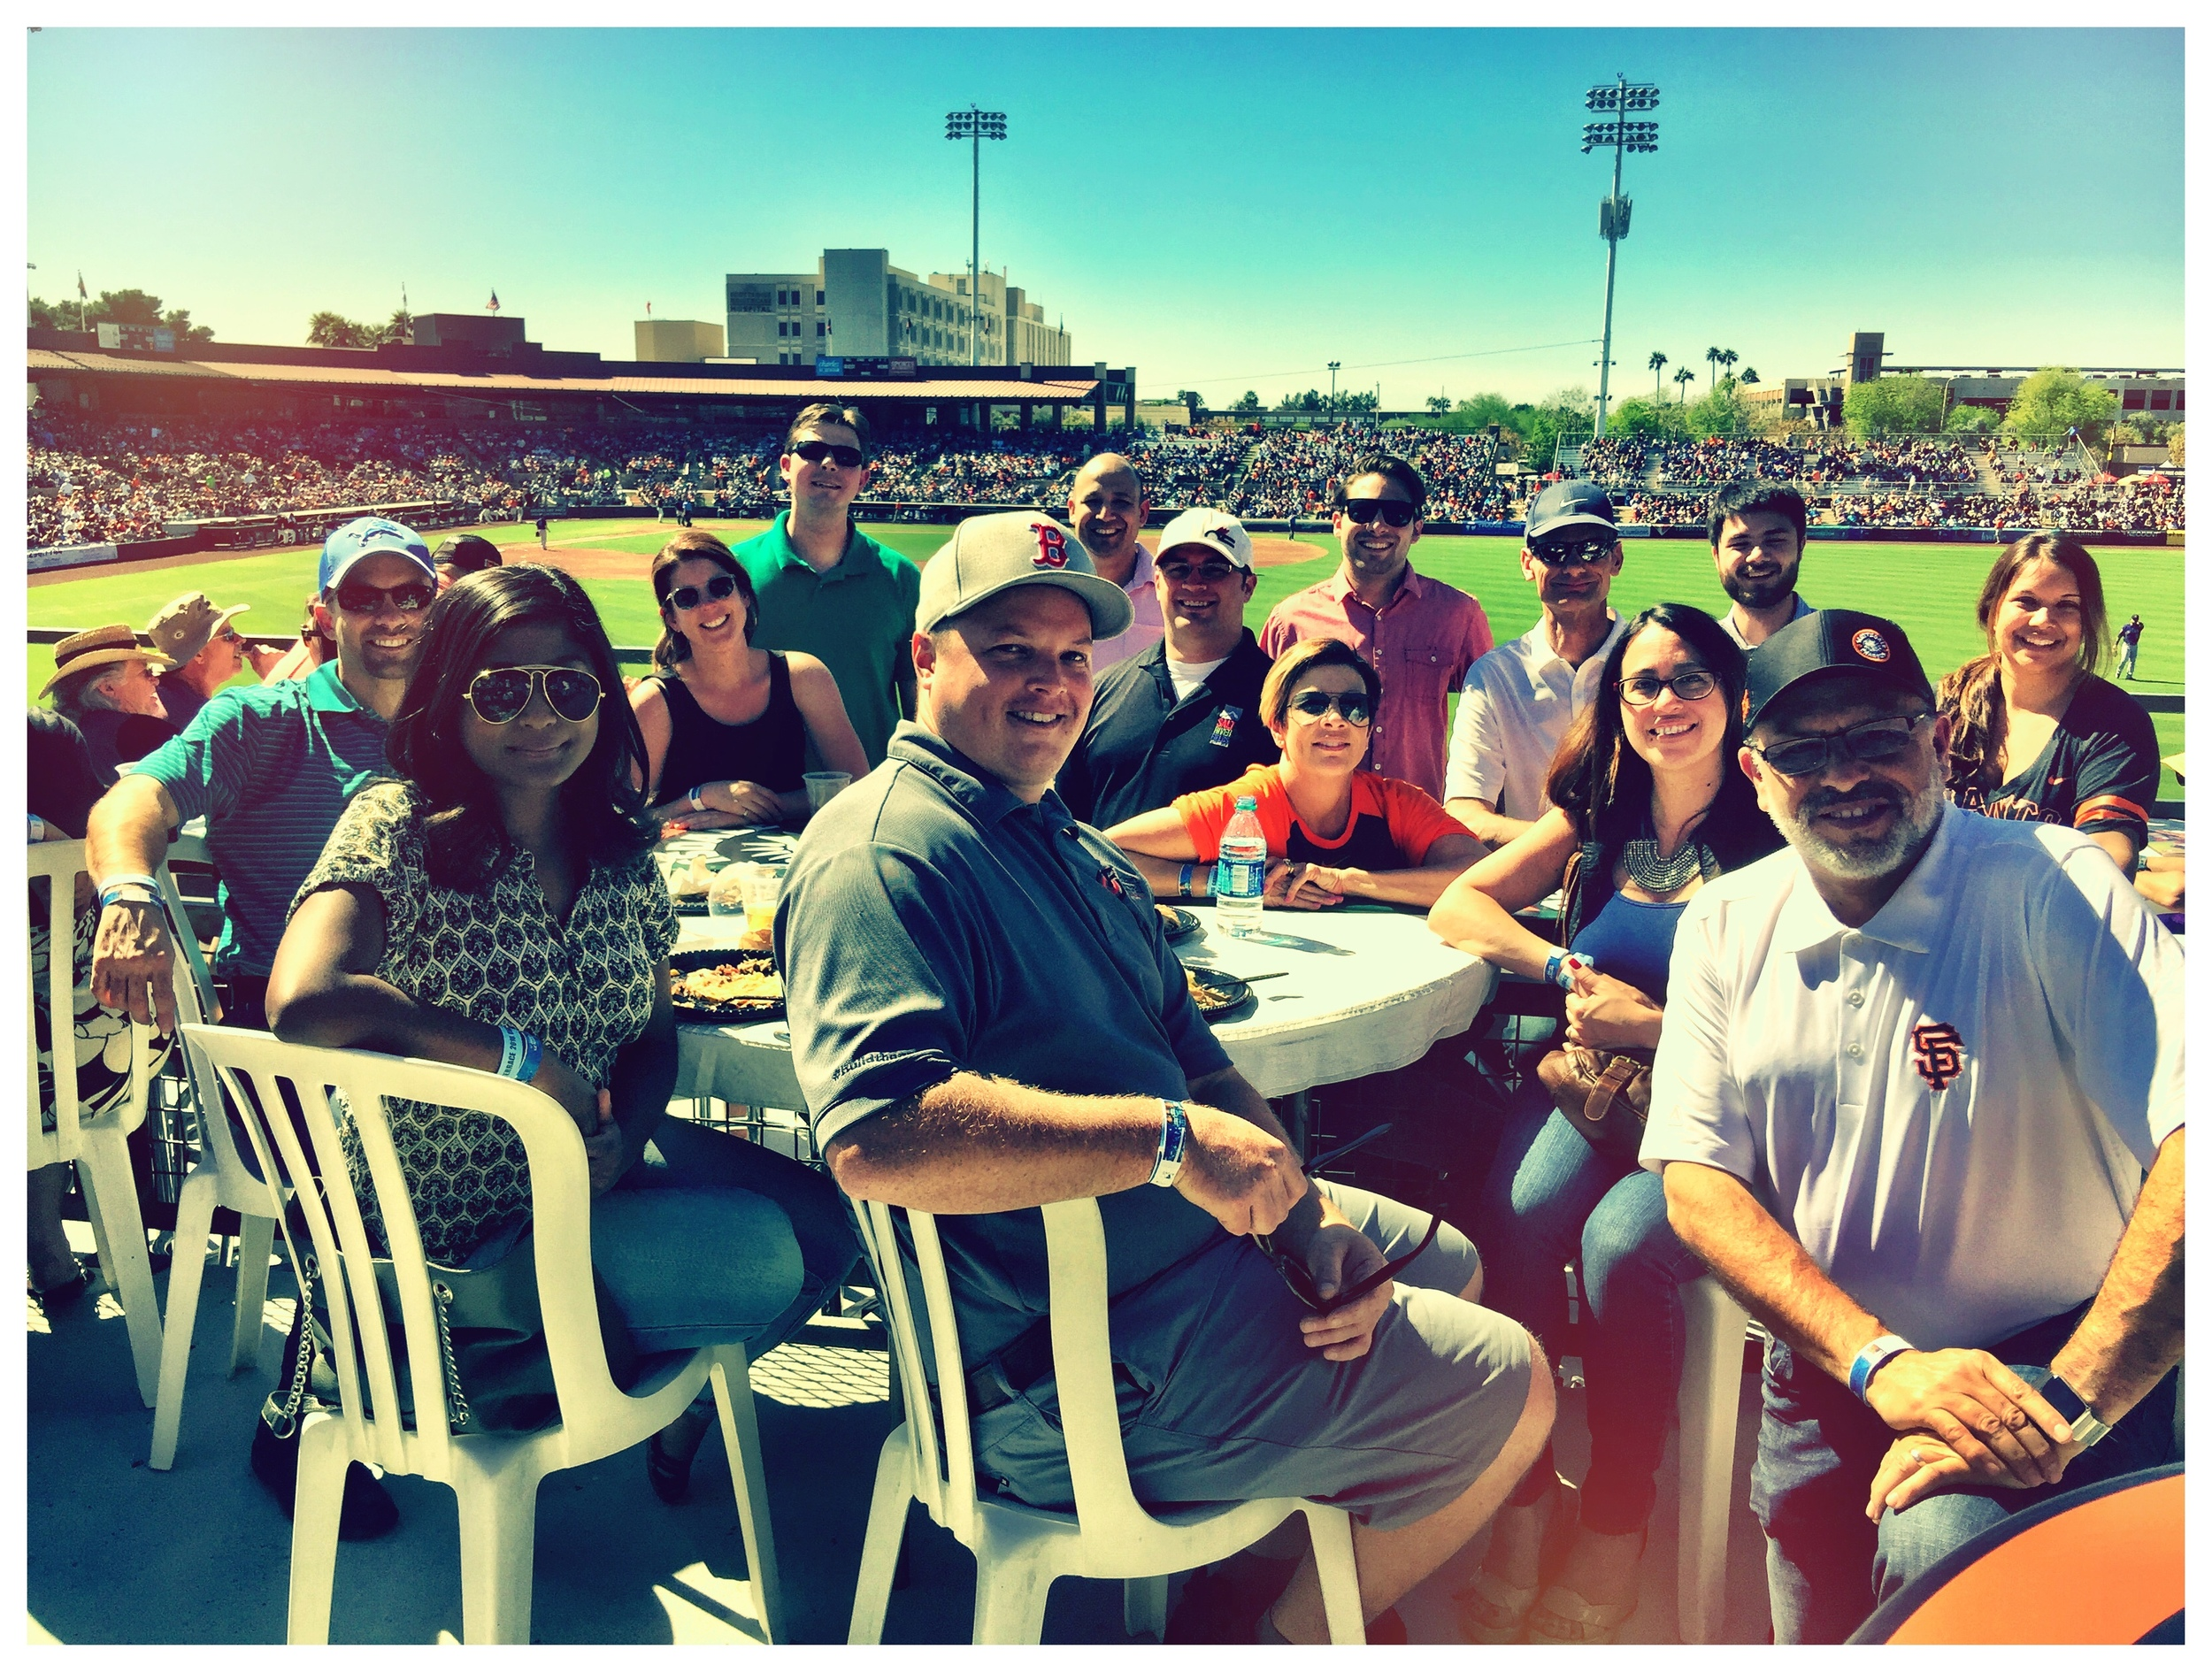 The Candelaria Design crew out at the Ballpark - Scottsdale Charro Lodge